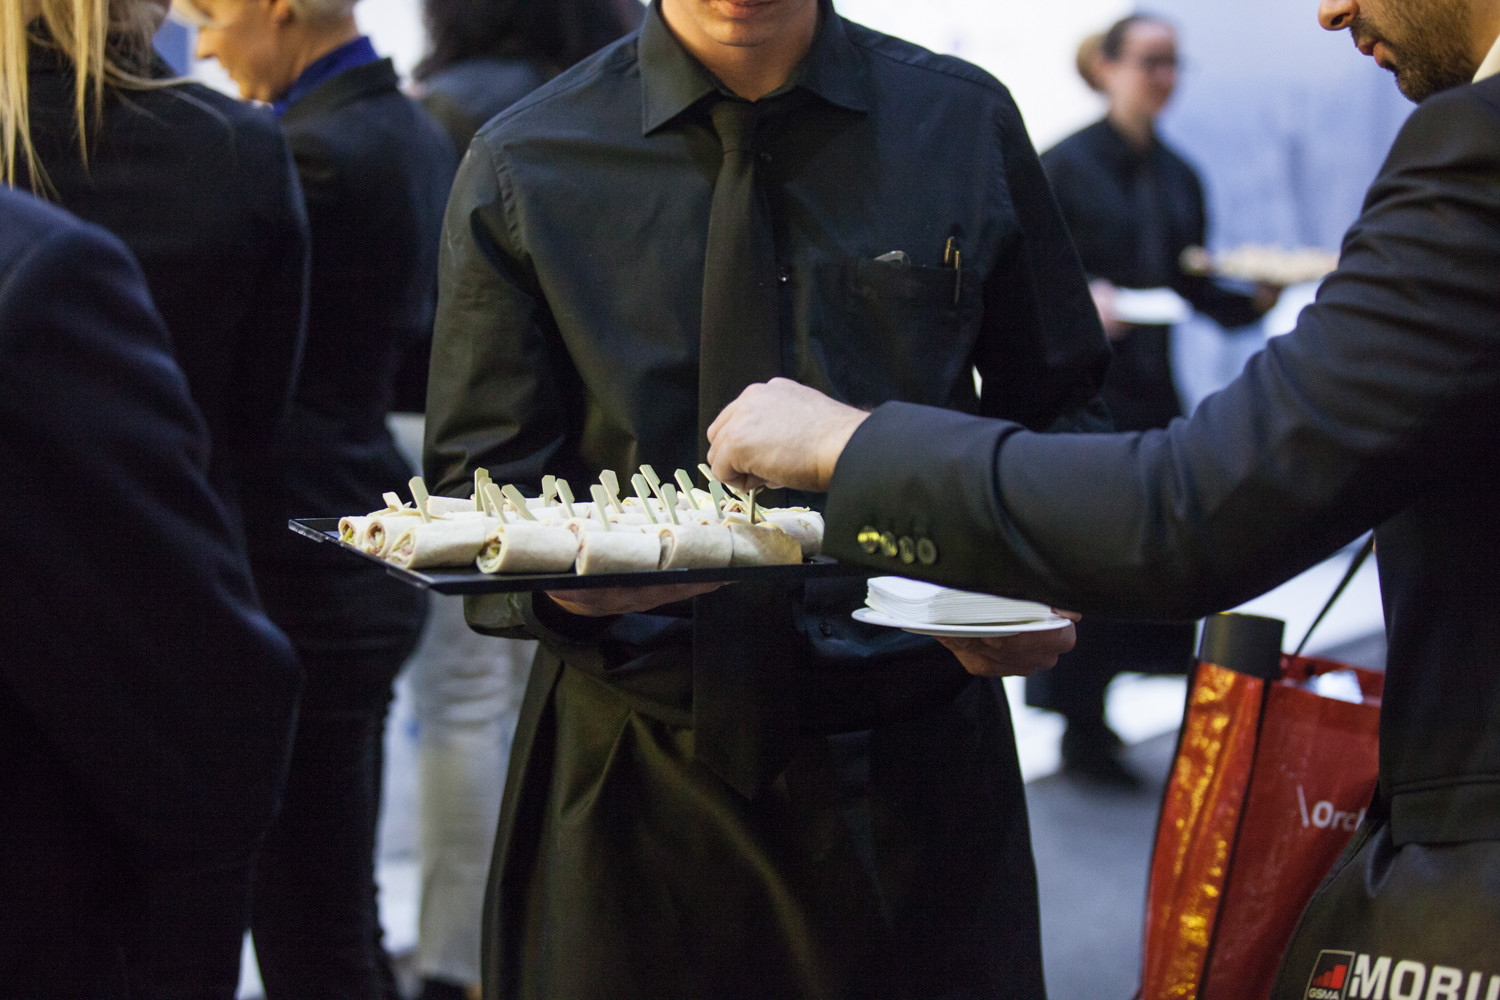 Royal Catering at Mobile World Congress